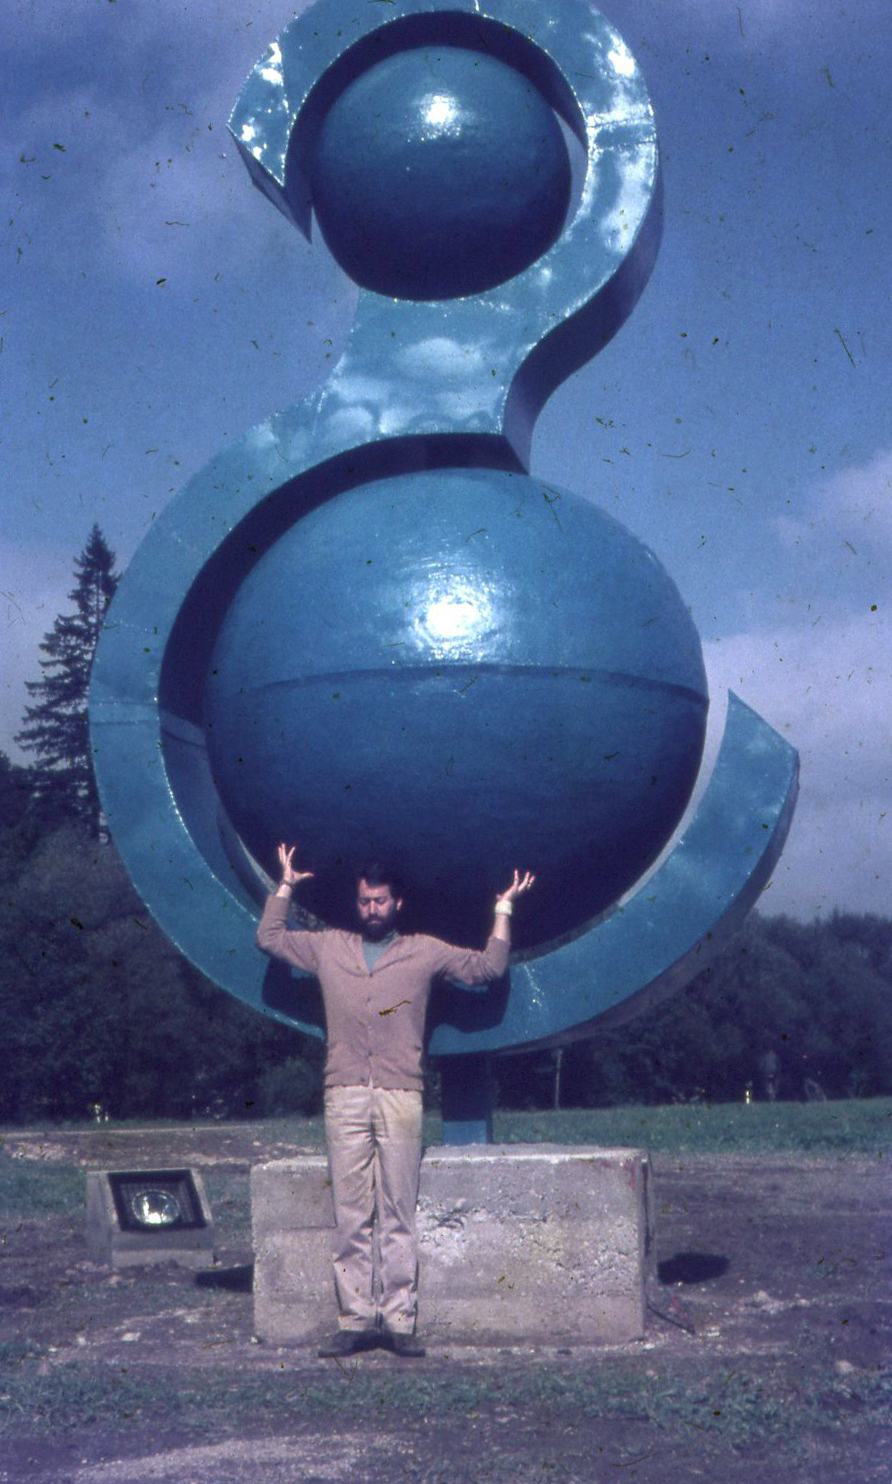 Man standing in front of sculpture. Large Letter S with 2 balls enclosed.